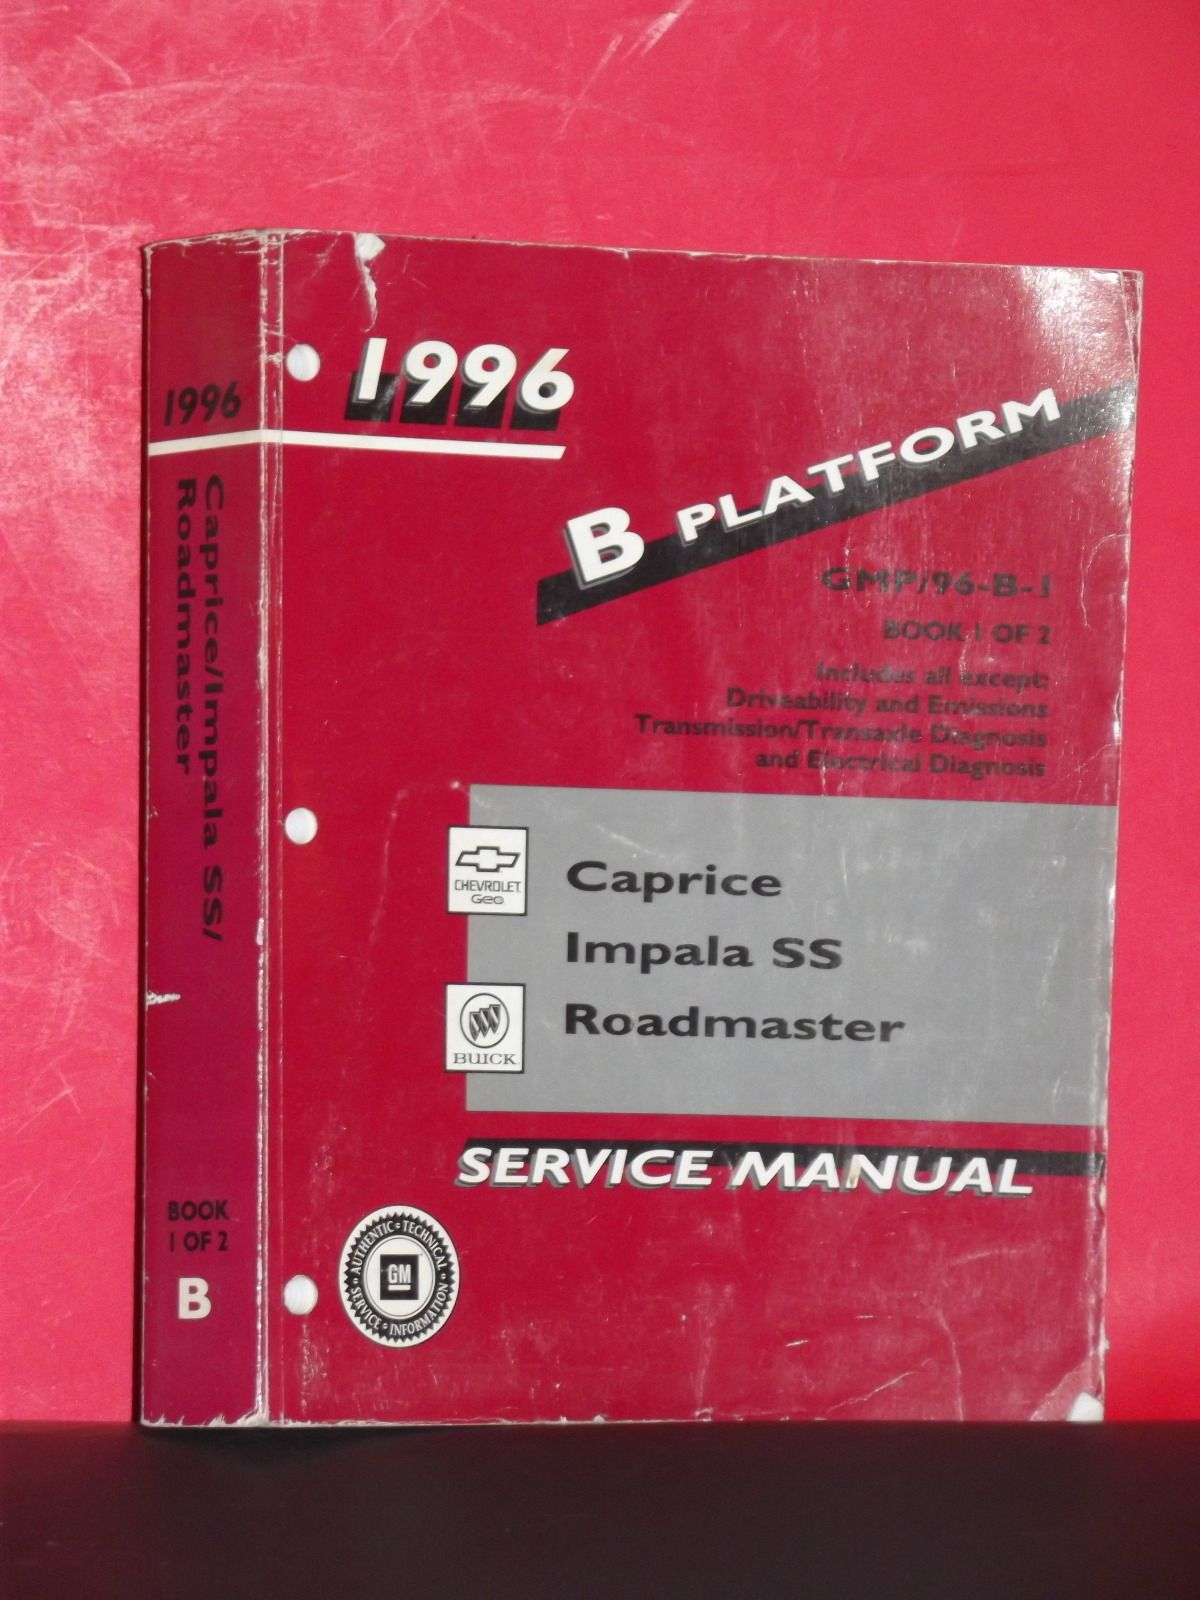 1996 B Platform Caprice/Impala SS/Roadmaster Service Manual Book 1 of 2 SOLD